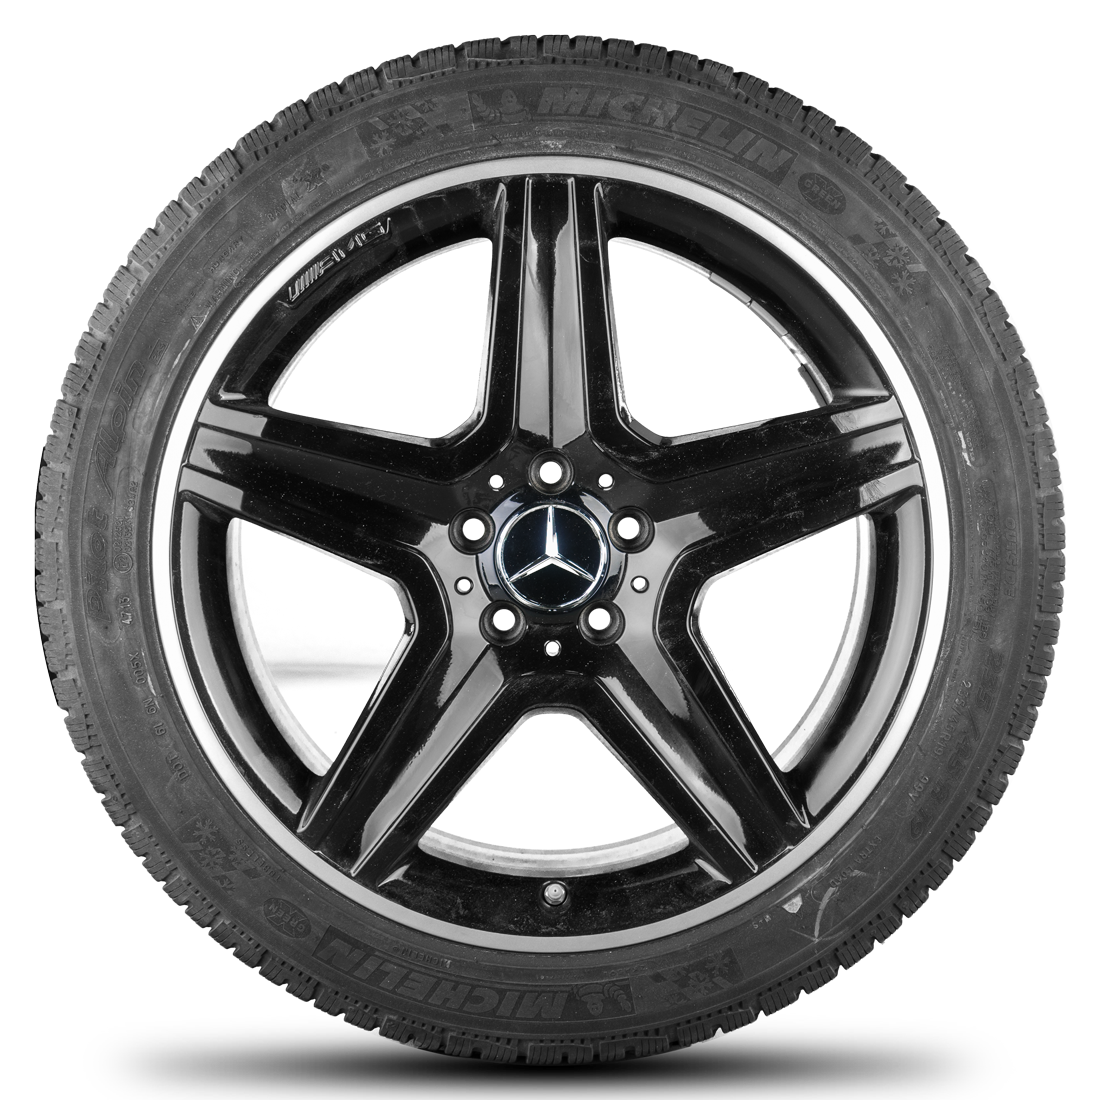 Amg 19 inch mercedes benz rims gla x156 alloy wheels winter for Mercedes benz tyres